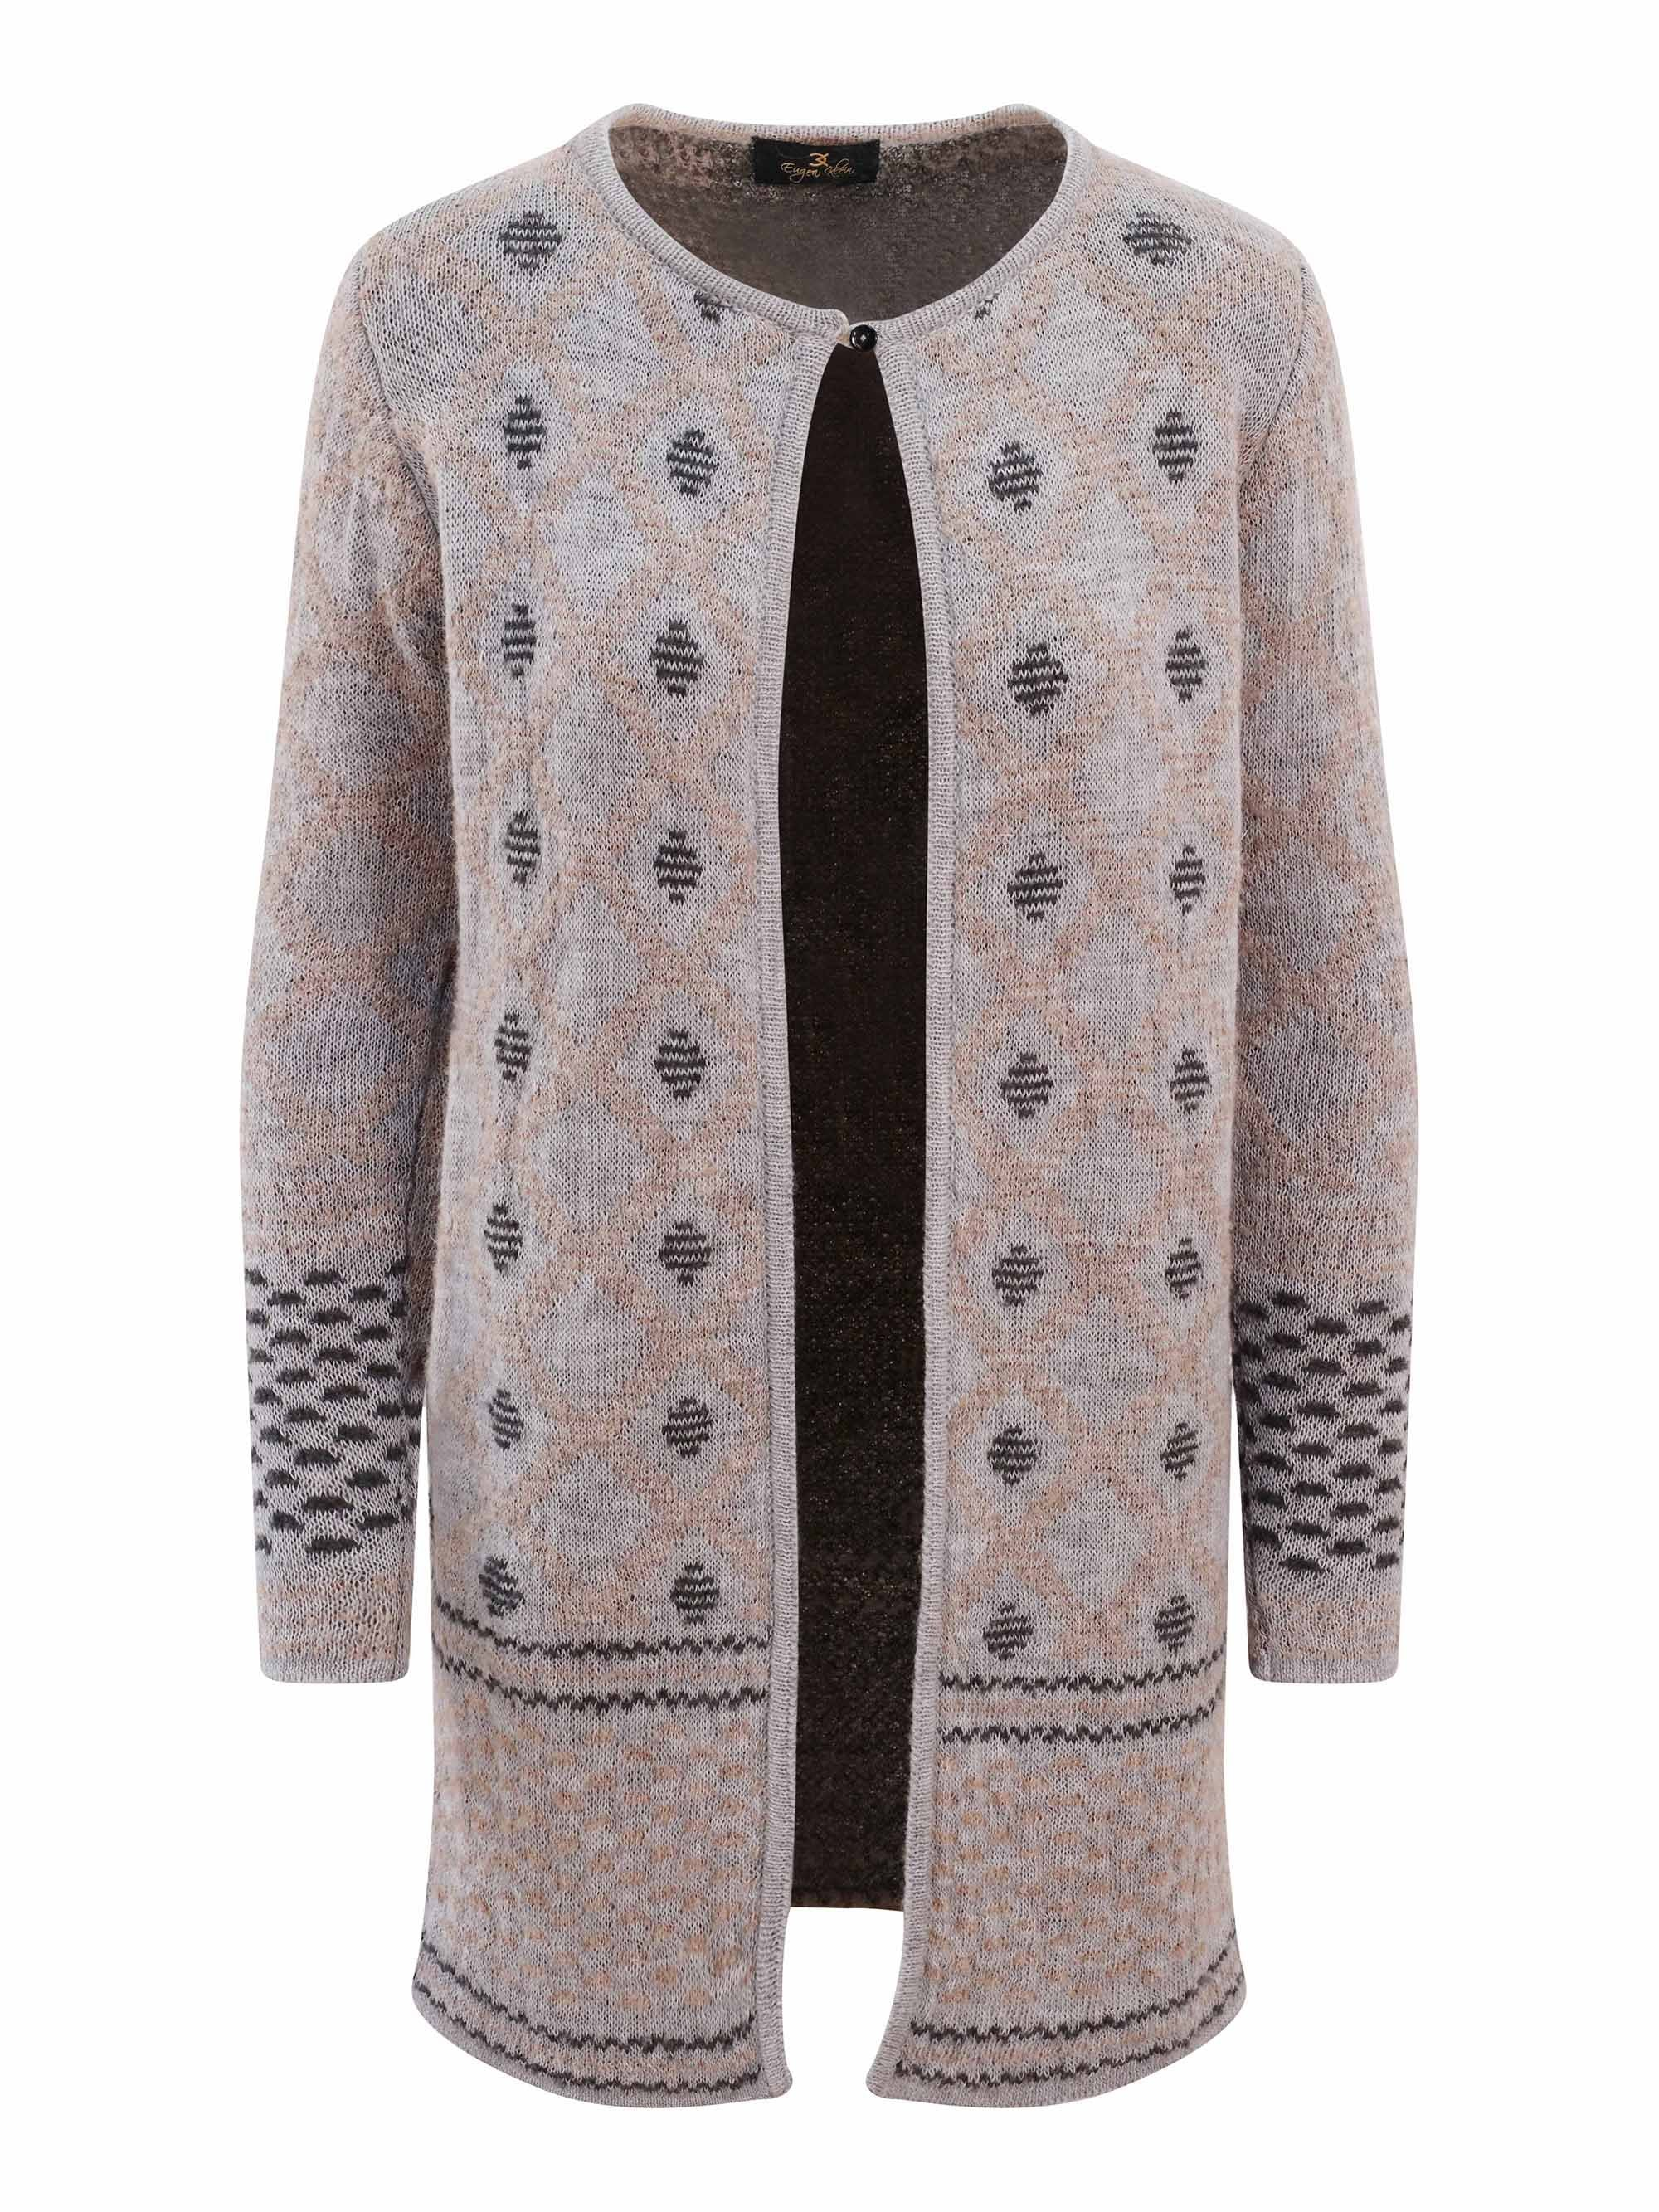 Eugen Klein Grey/Beige Jacquard Knit Edge to Edge Cardigan